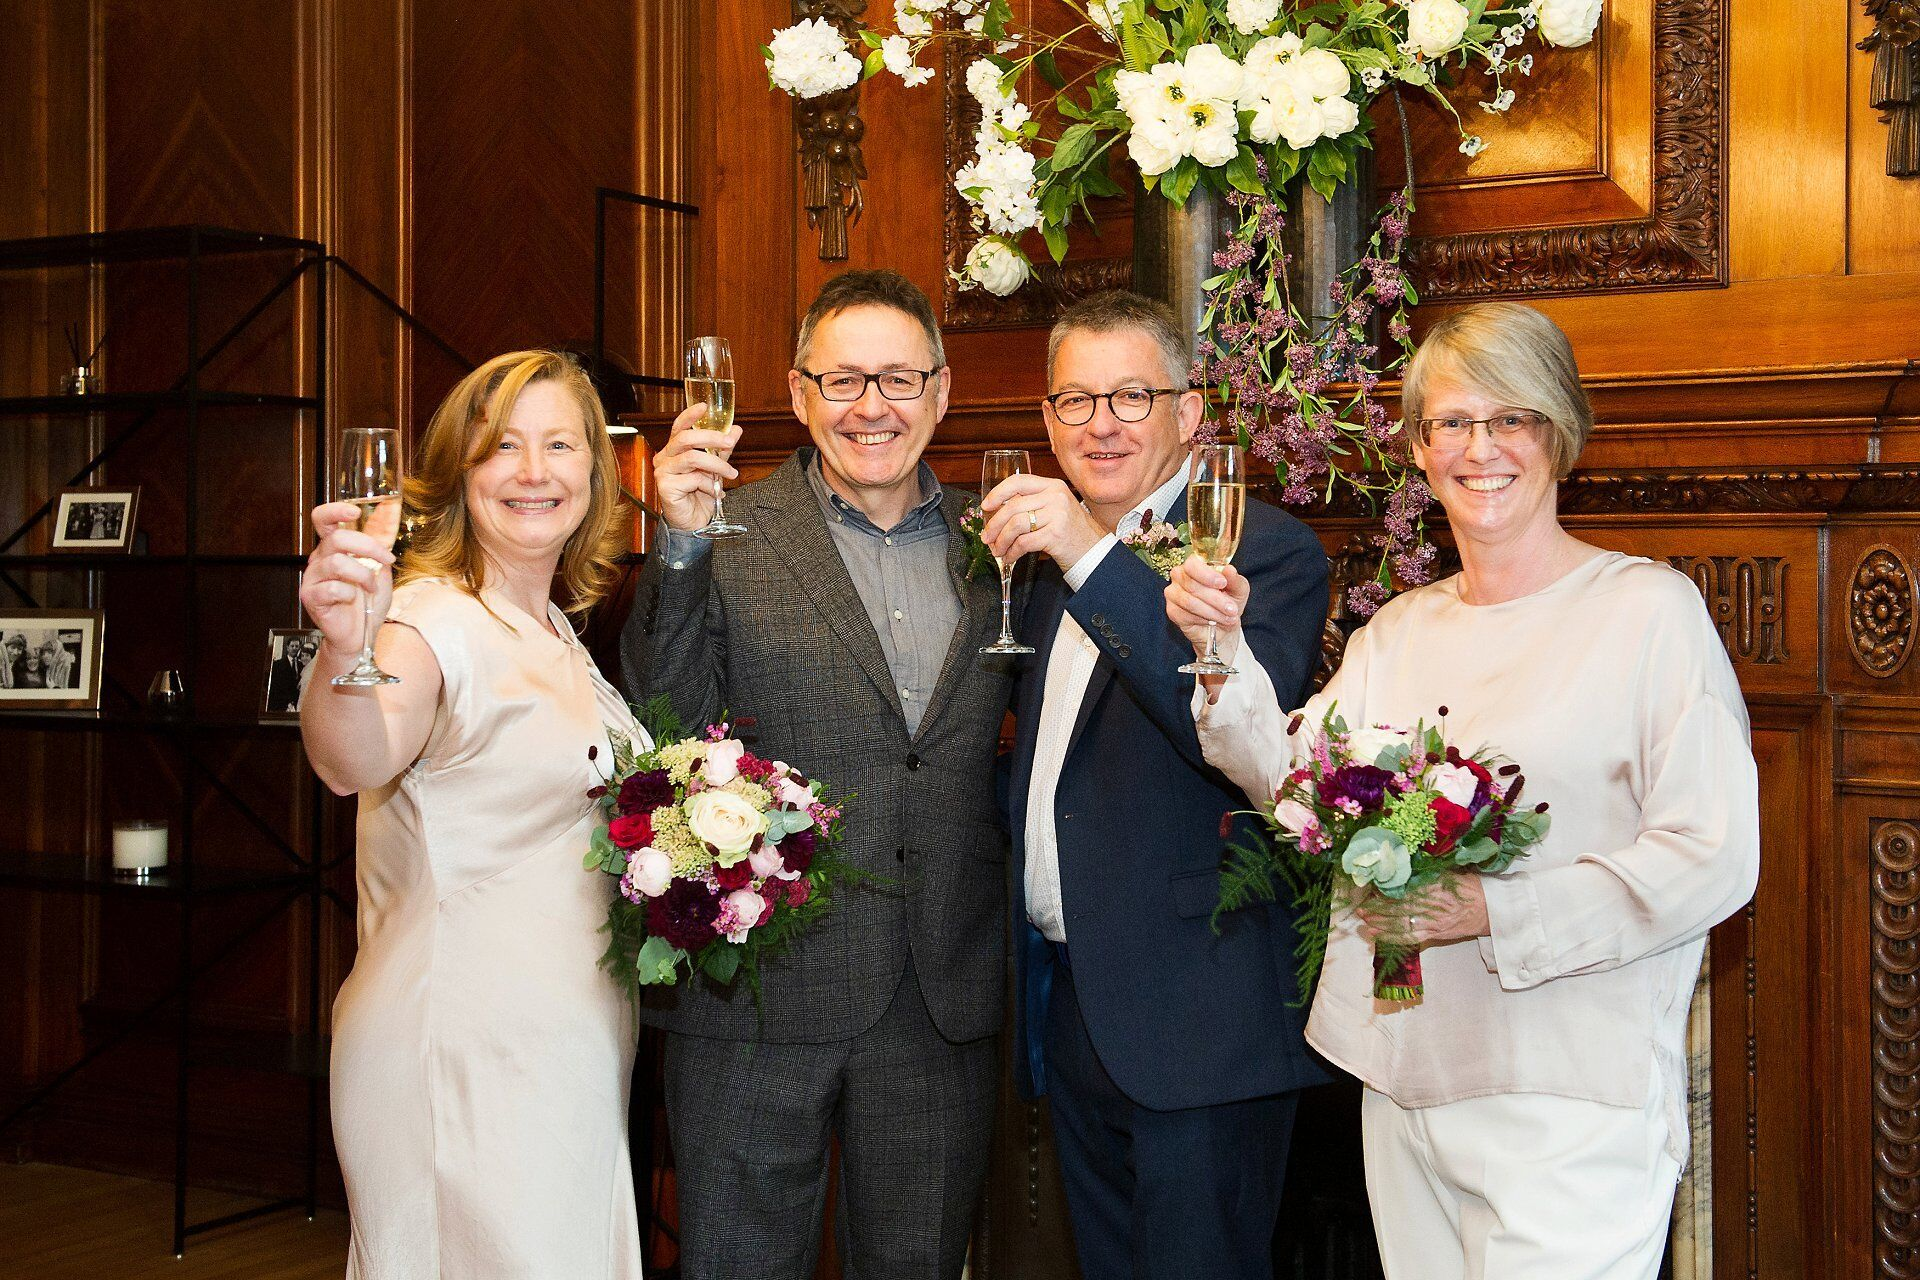 first toast option and paddington room wedding photography at old marylebone town hall showing two brides and their two witnesses for their westminster registry office elopement